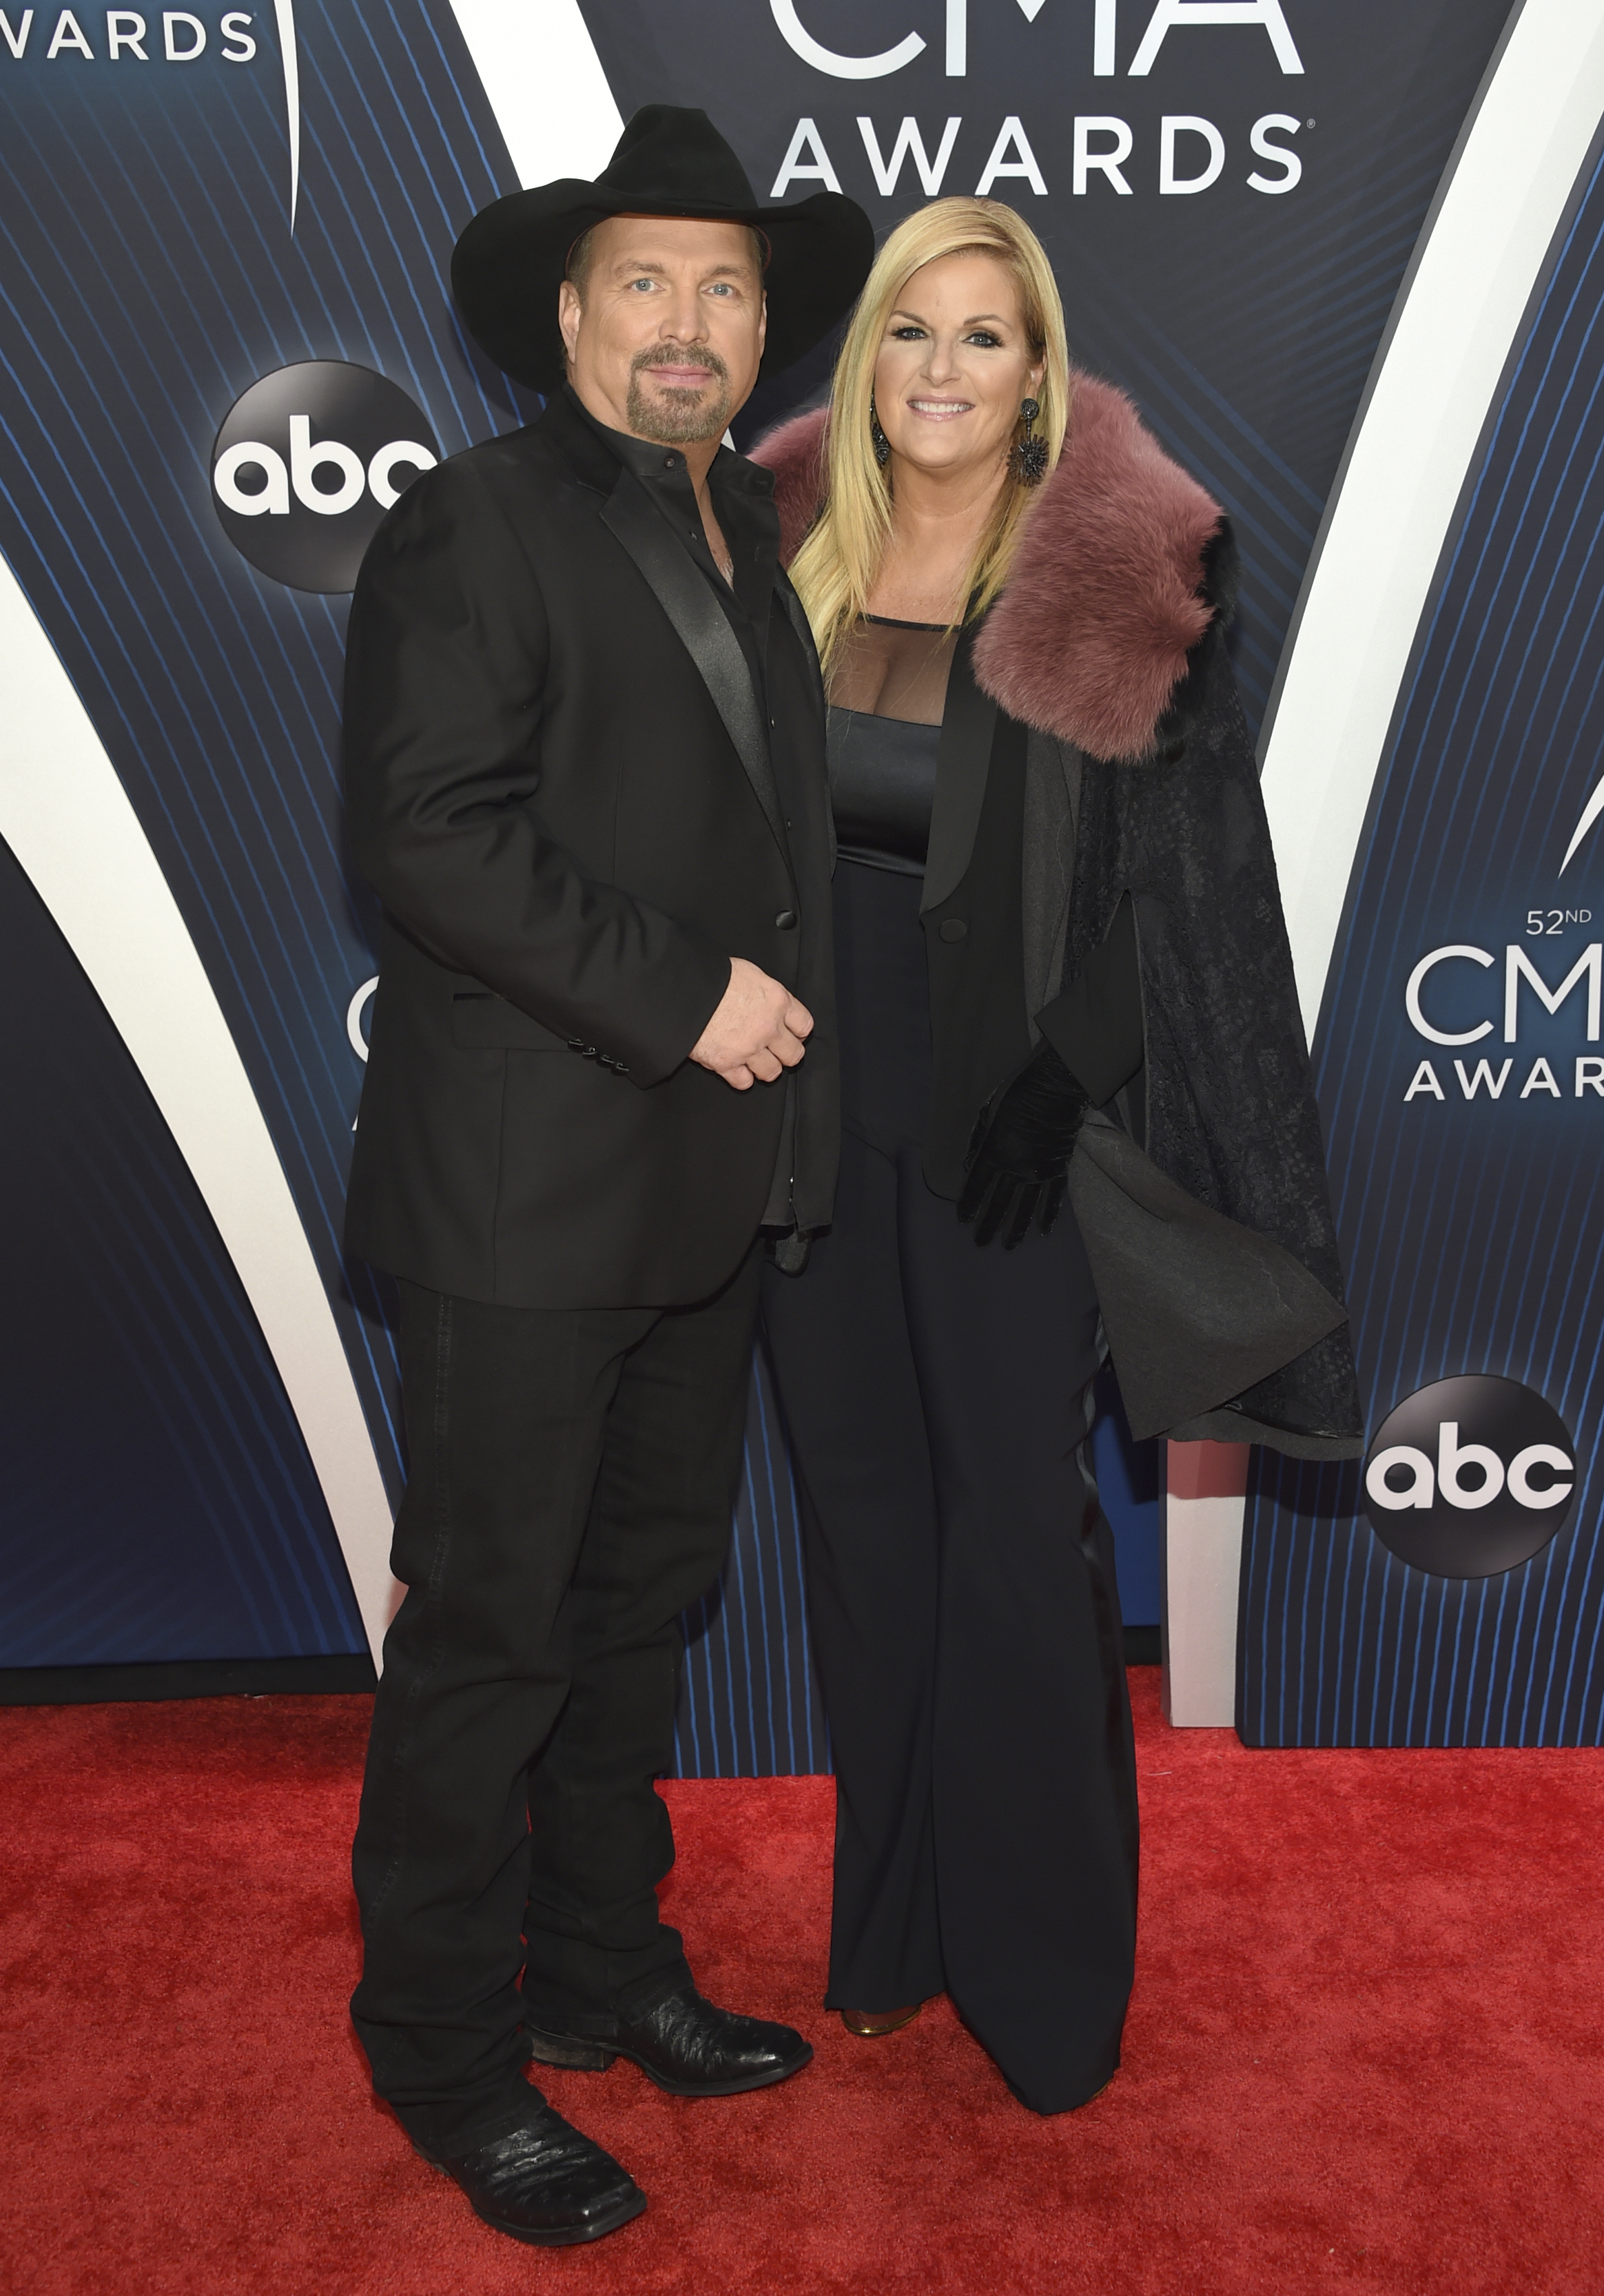 "<div class=""meta image-caption""><div class=""origin-logo origin-image ap""><span>AP</span></div><span class=""caption-text"">Garth Brooks, left, and Trisha Yearwood arrive at the 52nd annual CMA Awards at Bridgestone Arena on Wednesday, Nov. 14, 2018, in Nashville. (Photo by Evan Agostini/Invision/AP) (Evan Agostini/Invision/AP)</span></div>"